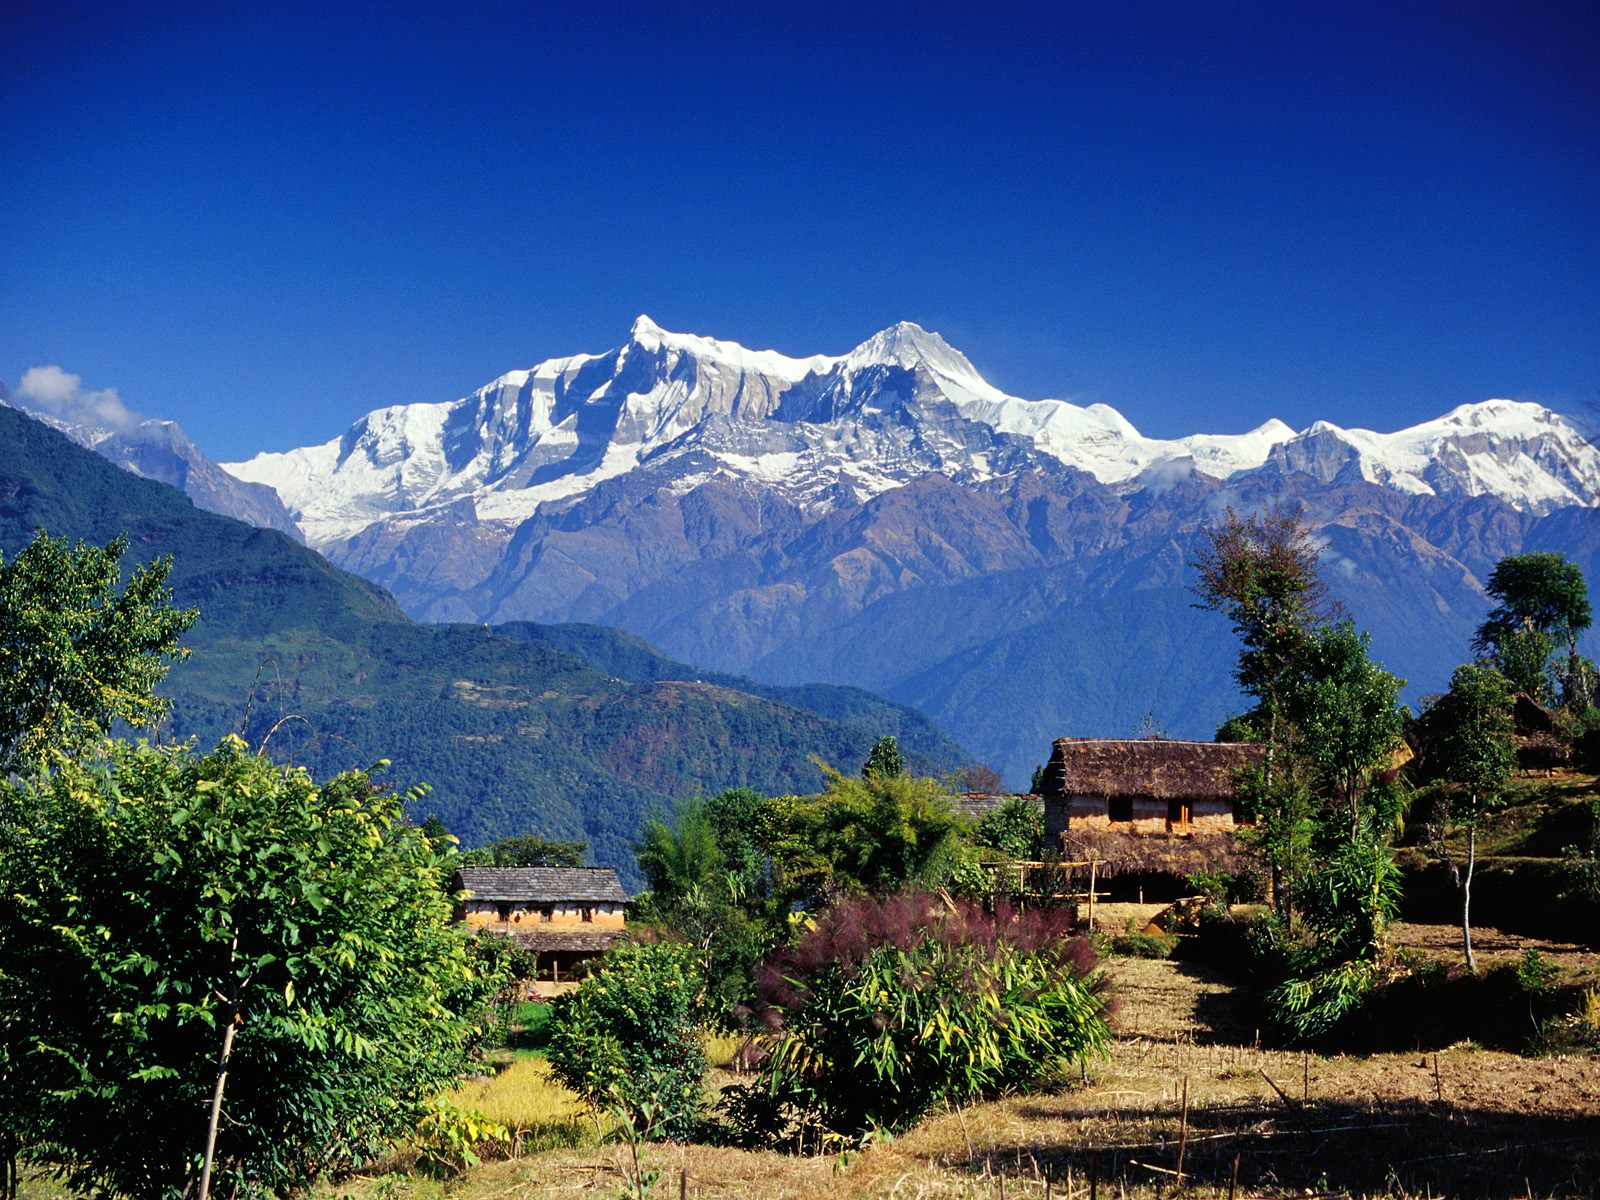 Nepal is a very mountainous area situated next to China and India. There are many valleys and hills that are standing in the way of relief efforts.